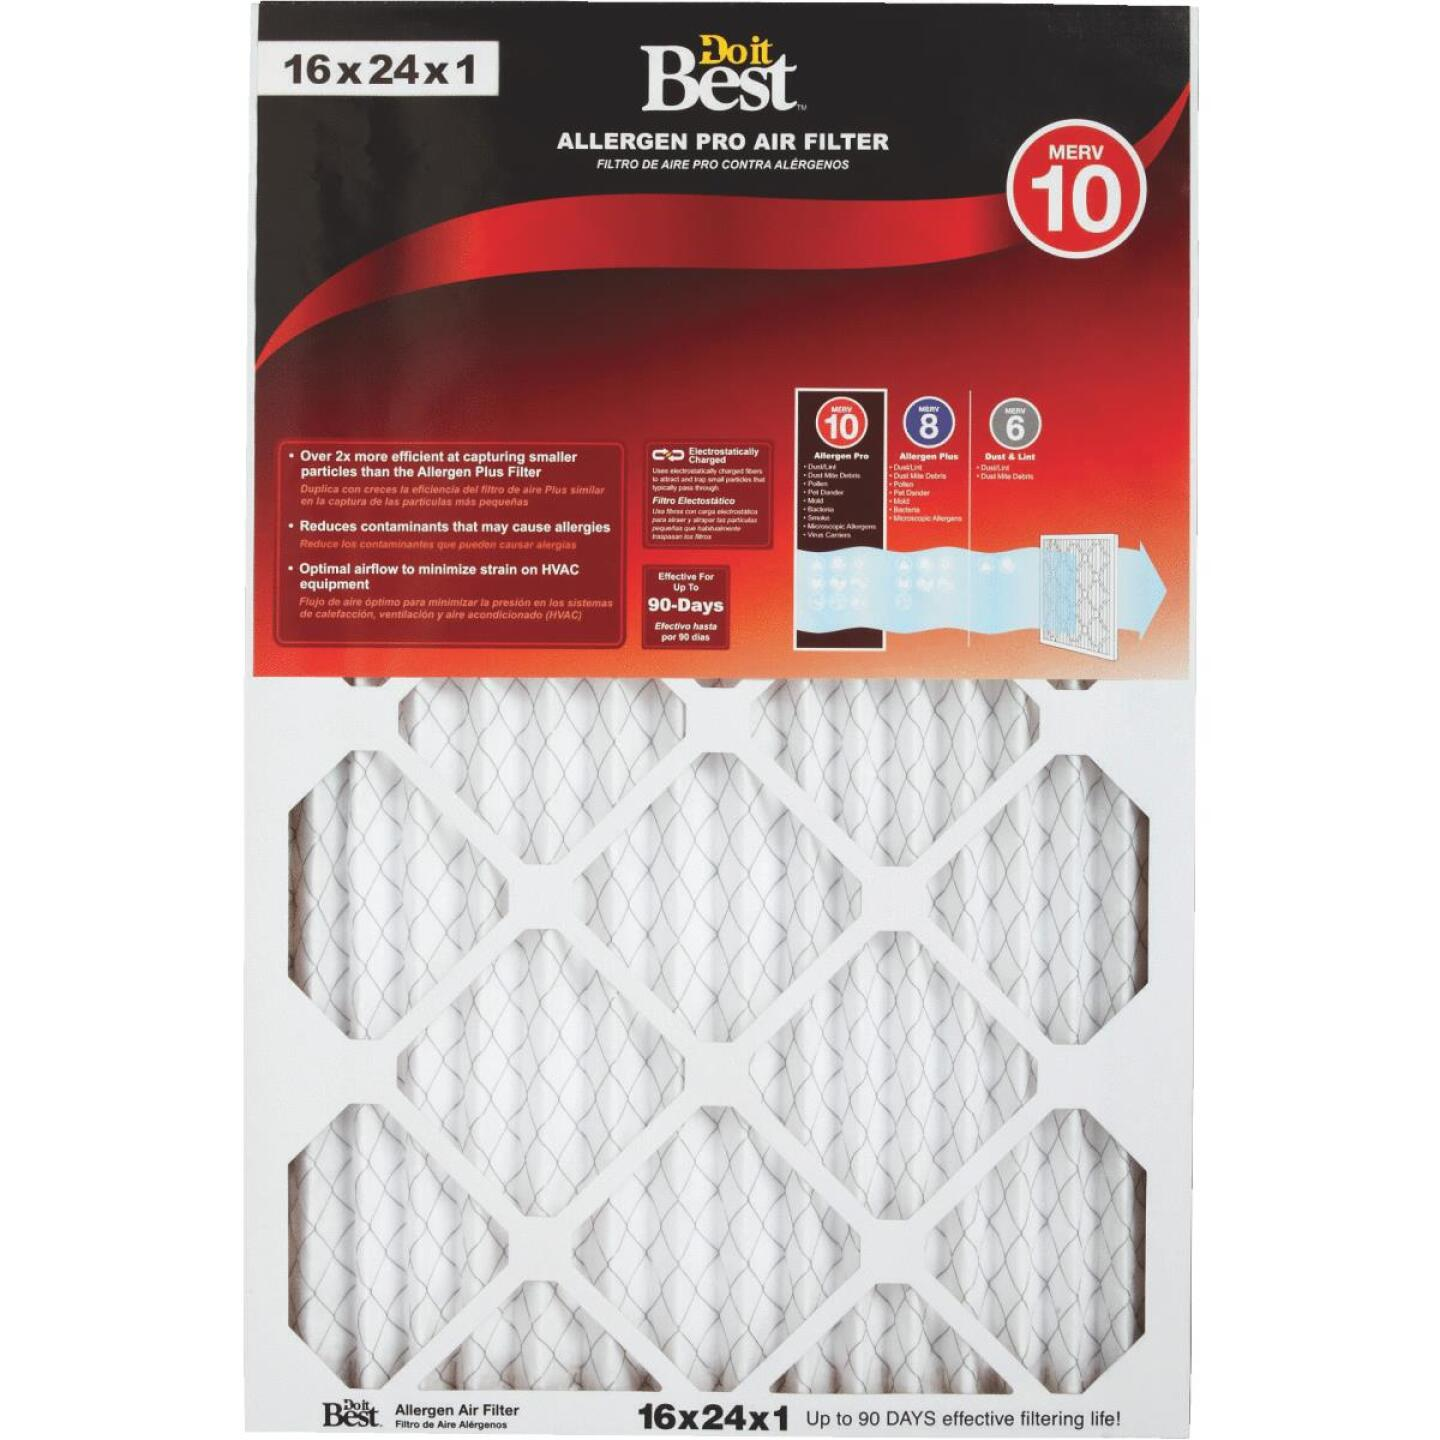 Do it Best 16 In. x 24 In. x 1 In. Allergen Pro MERV 10 Furnace Filter Image 1